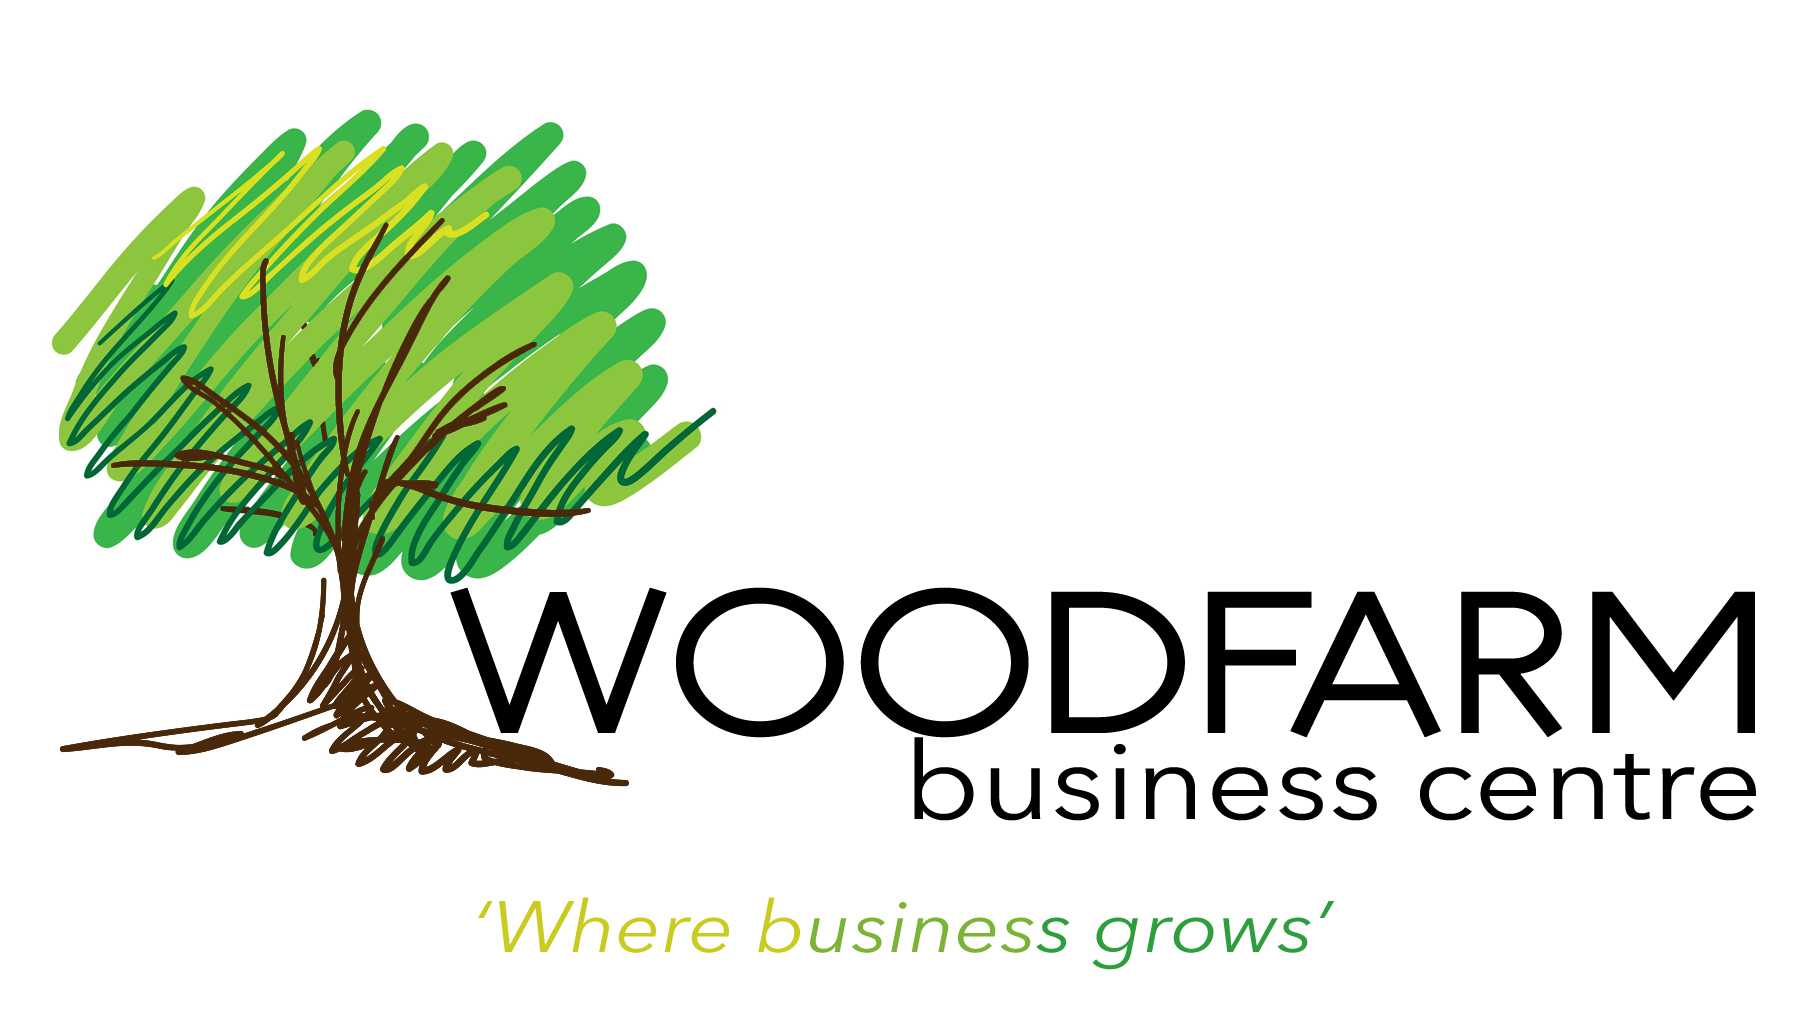 Woodfarm Meadows Business Centre